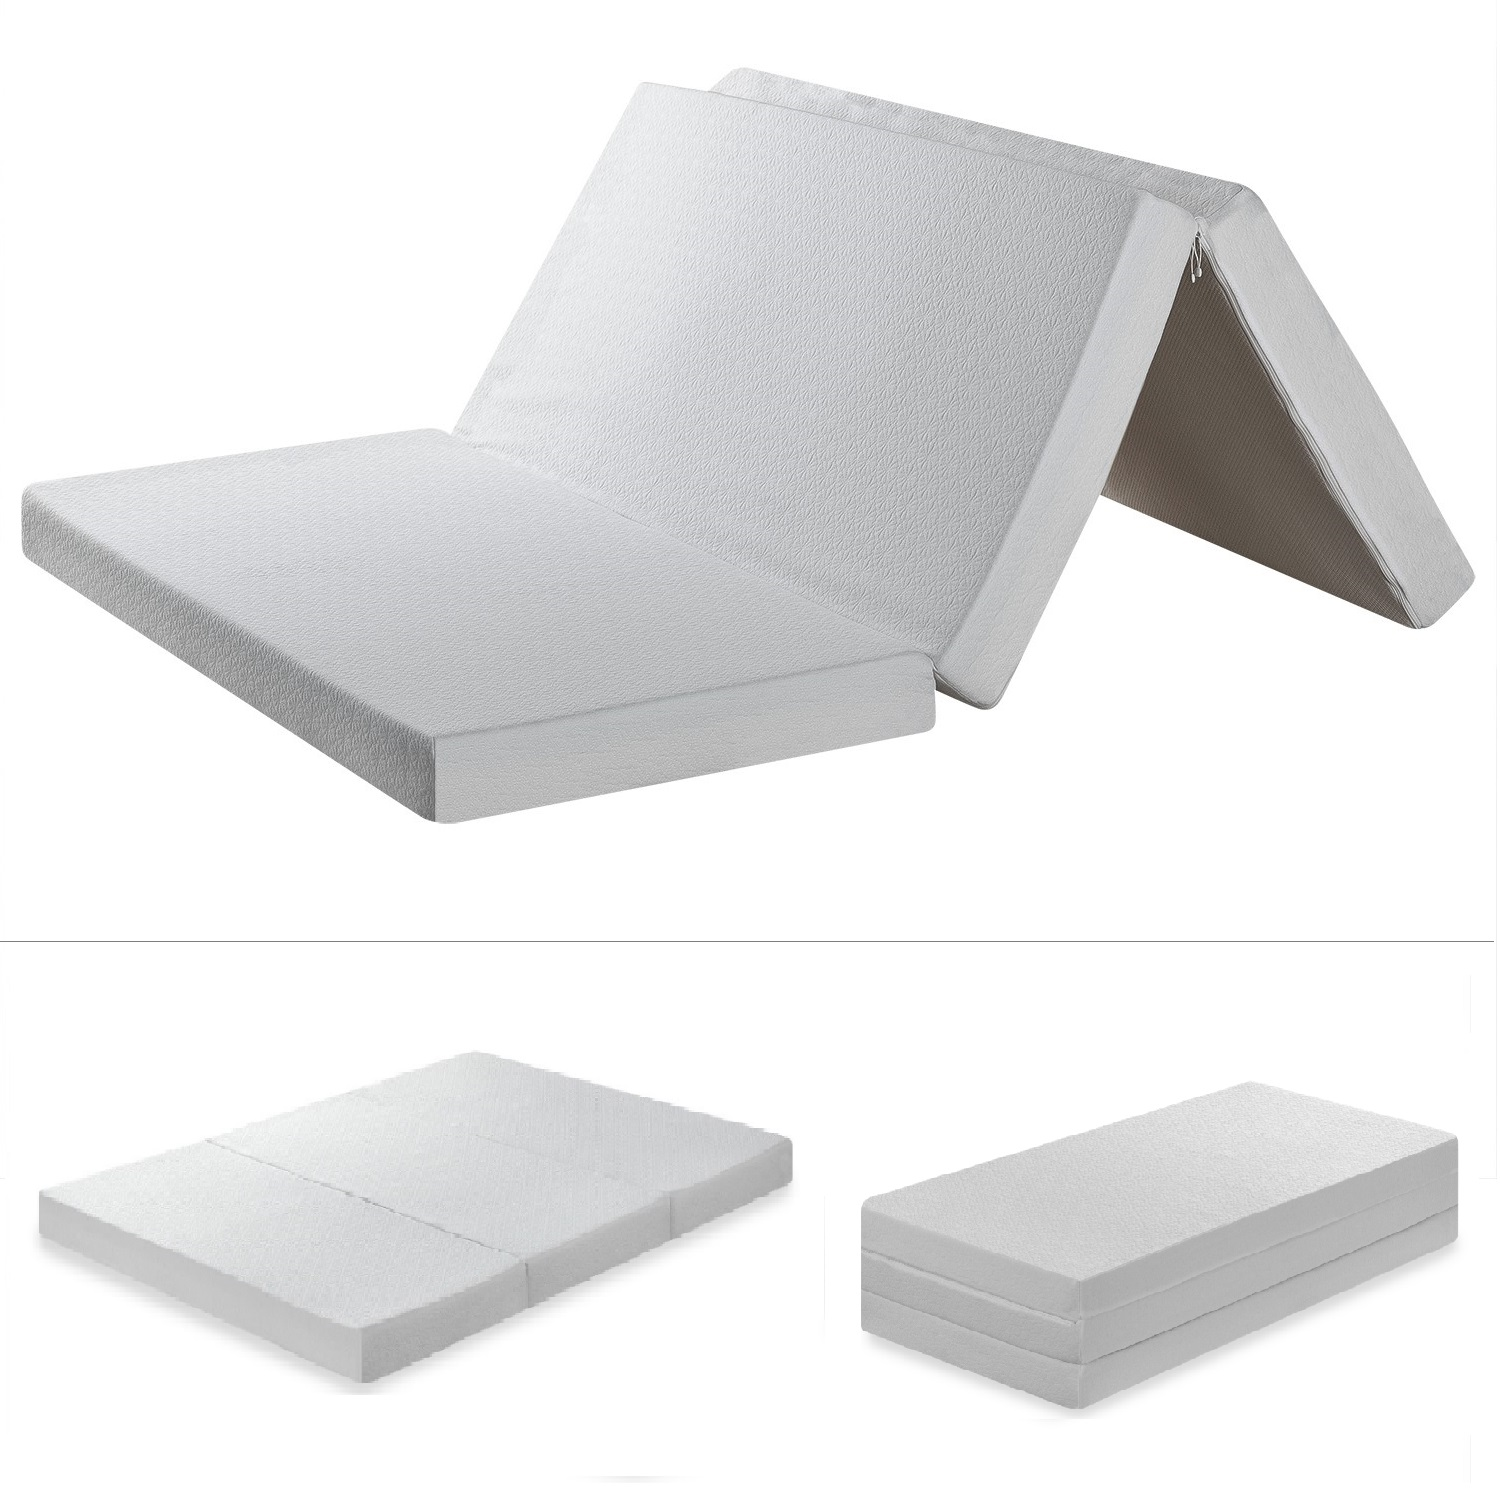 Foldable Foam Mattress Best Price Mattress 4 Inch Trifold Memory Foam Mattress Multiple Sizes